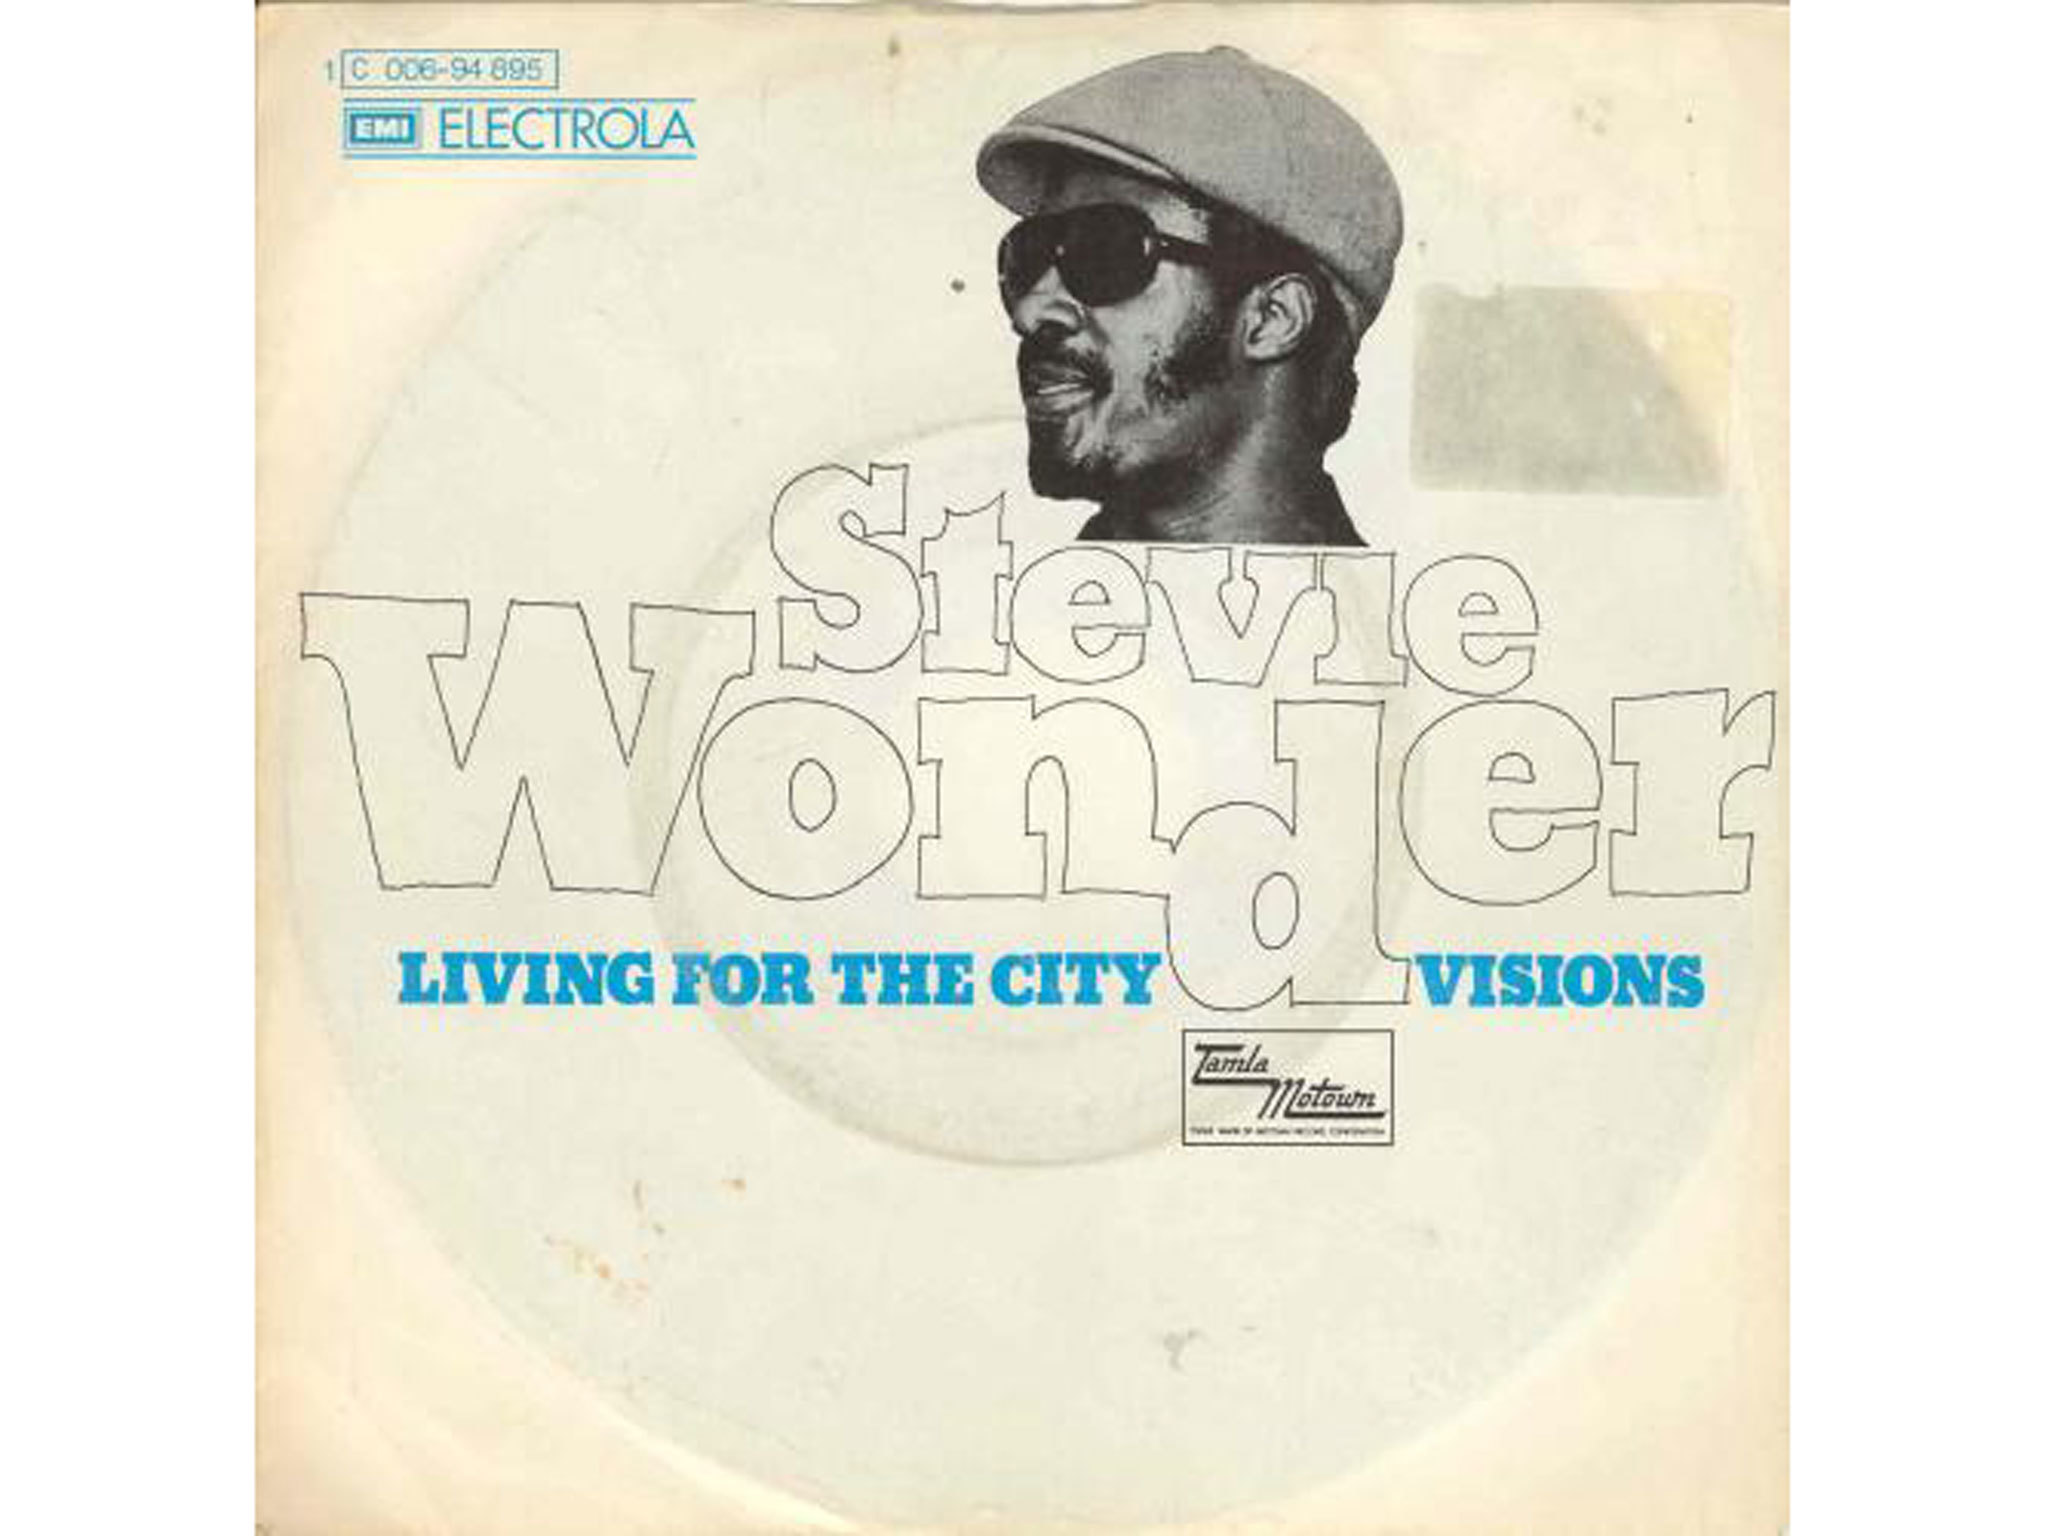 Stevie Wonder, living for the city, best soul songs